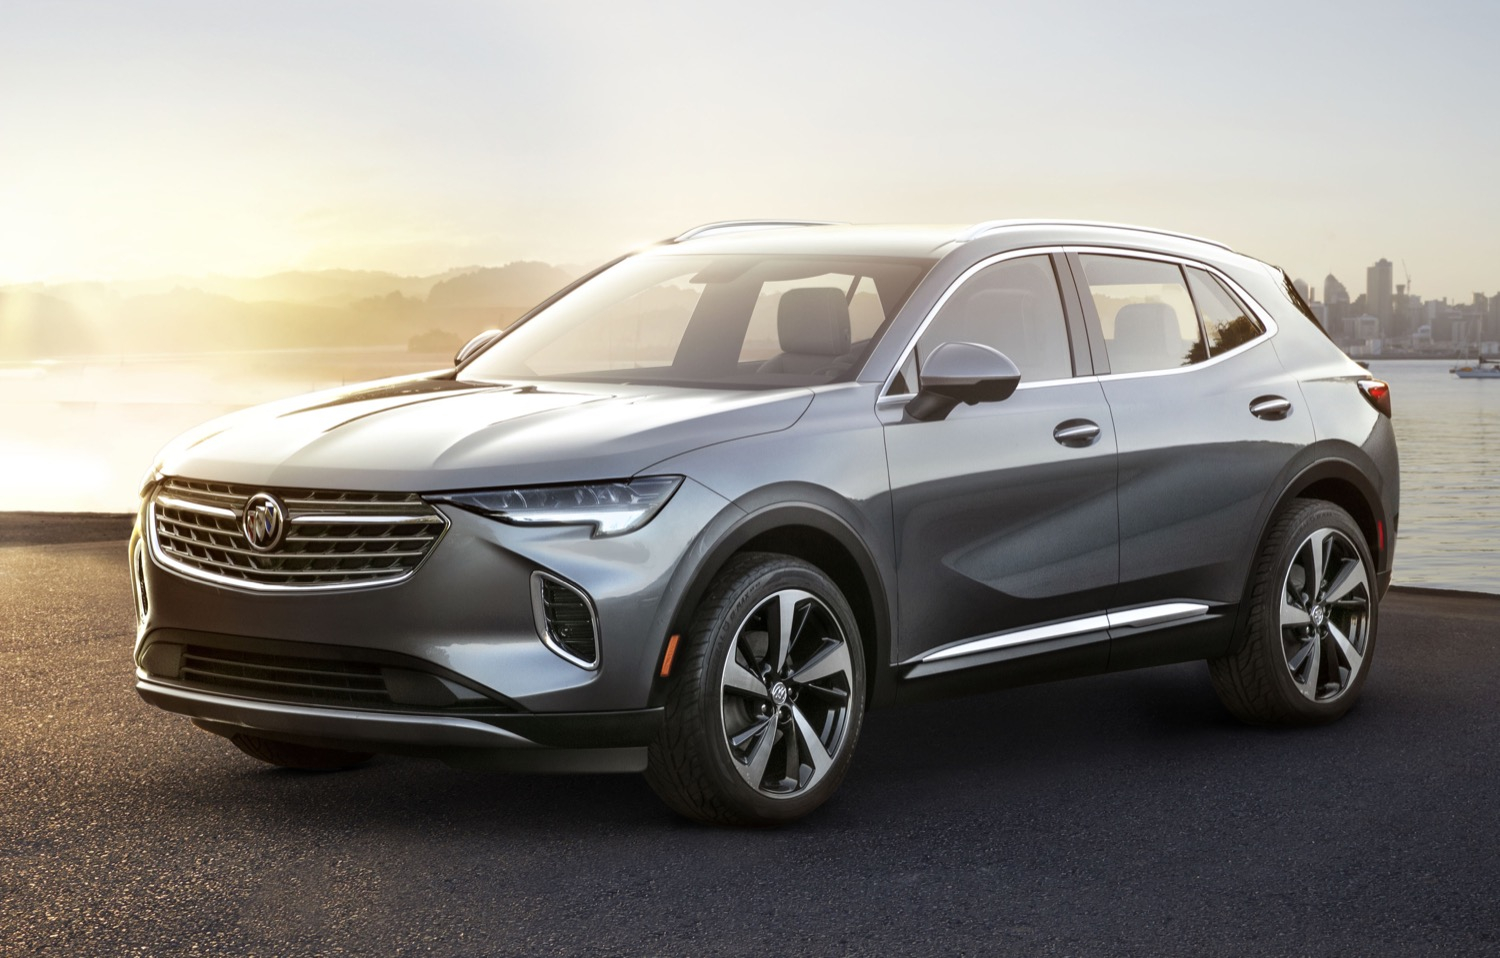 New 2021 Envision Still Built In China | Gm Authority 2022 Buick Envision Engine Options, Fwd, Features